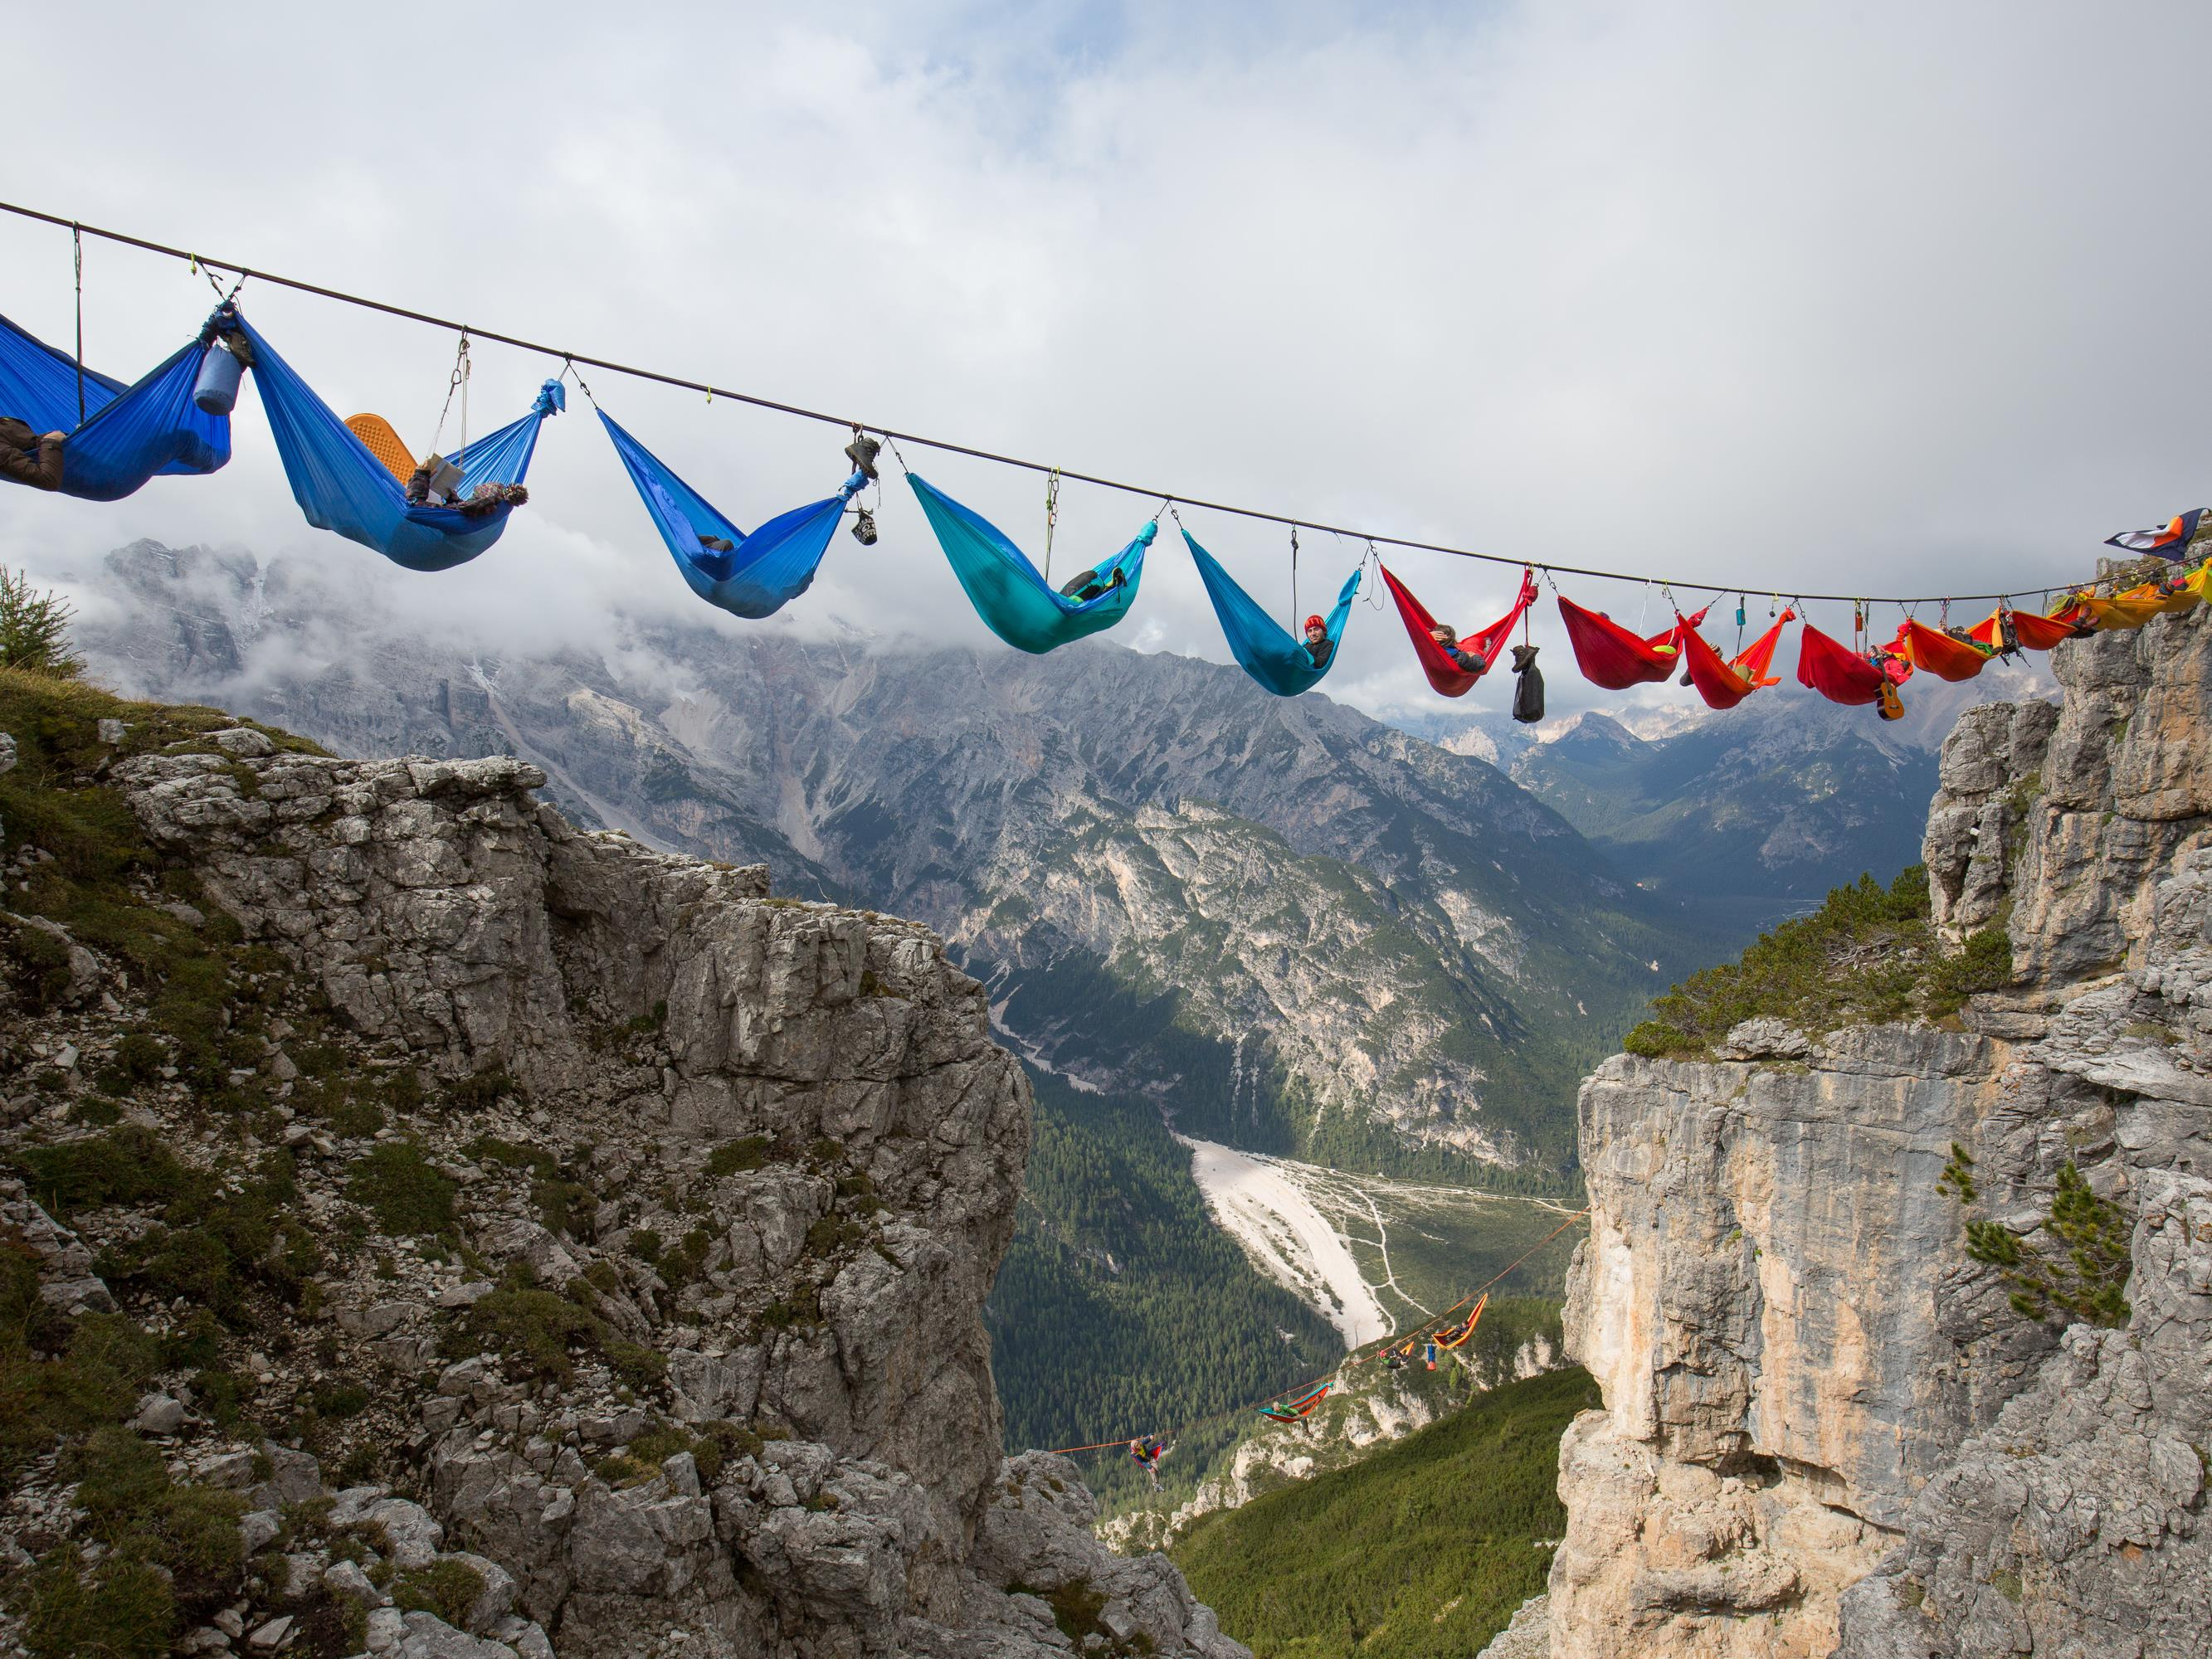 Hängematten-Session beim Highline-Meeting 2015 auf dem Monte Piana.